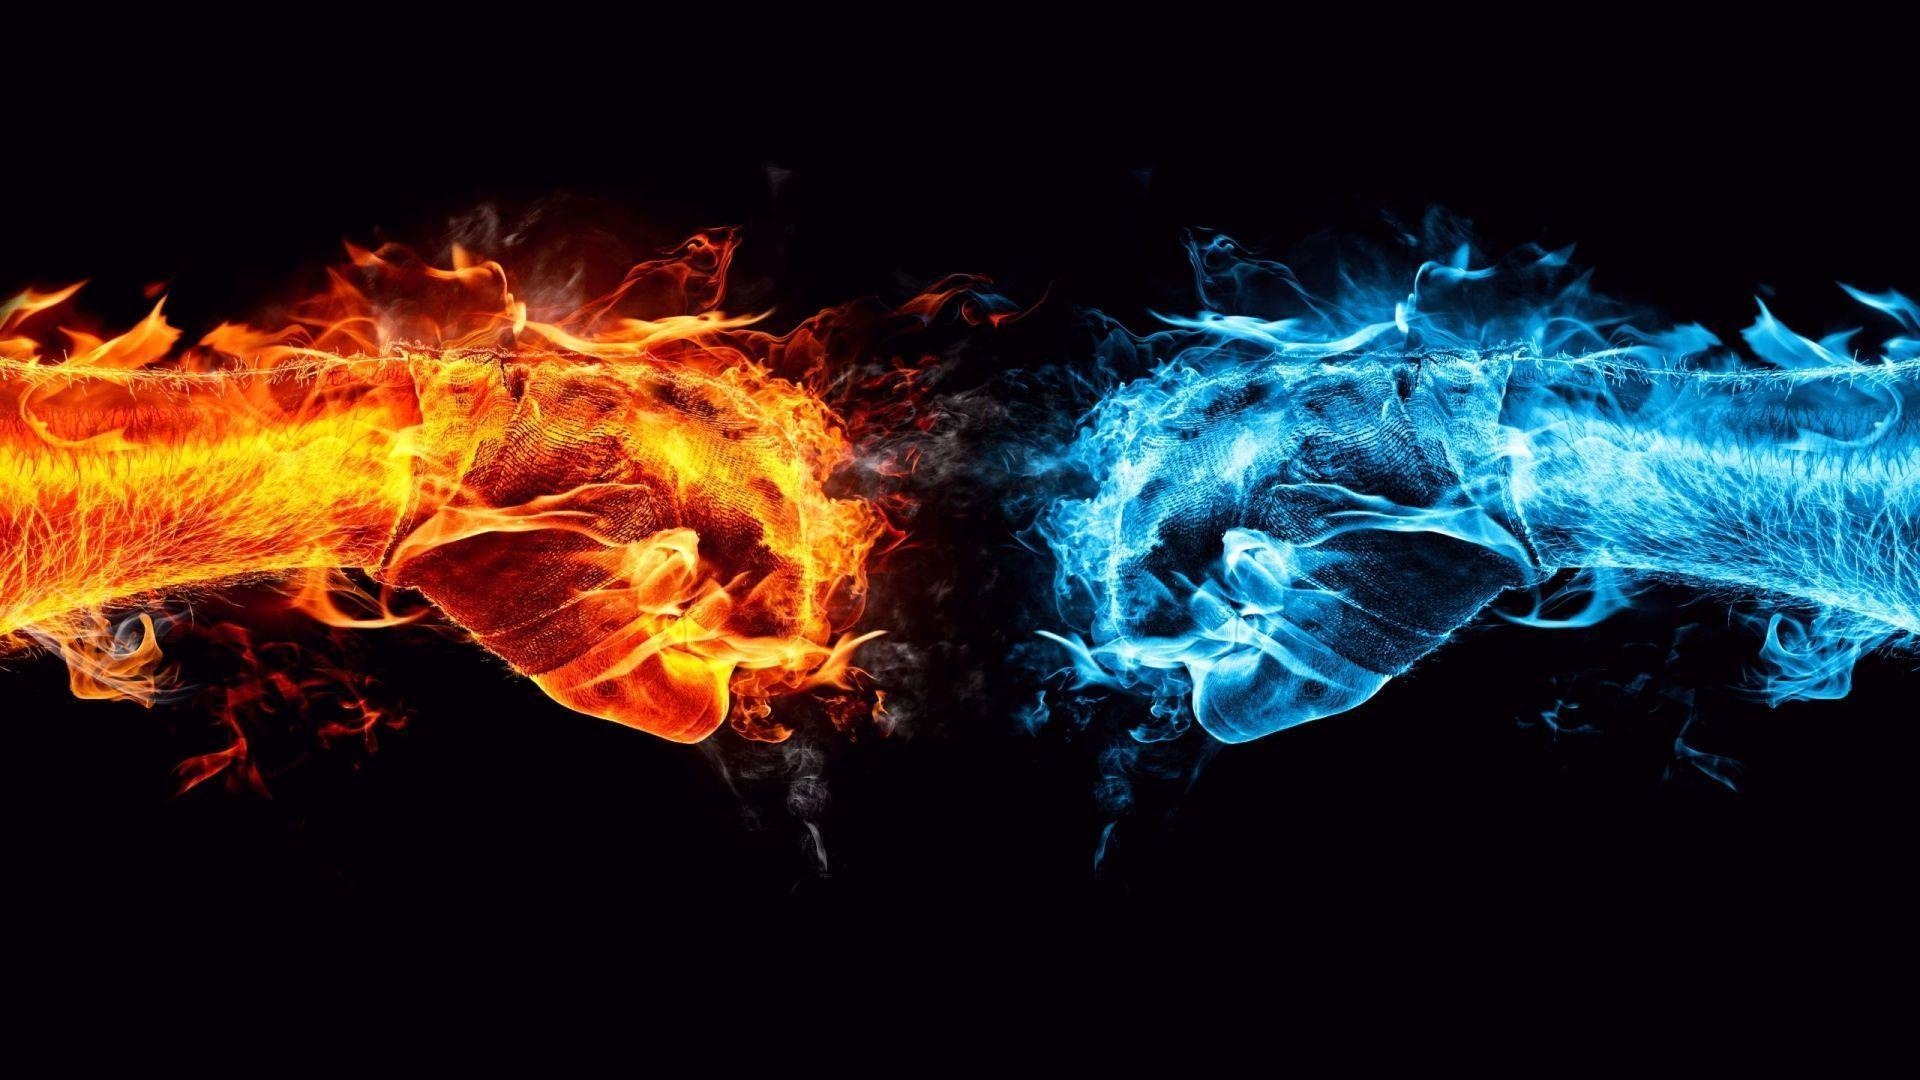 Fire And Ice Wallpapers HD 1080p